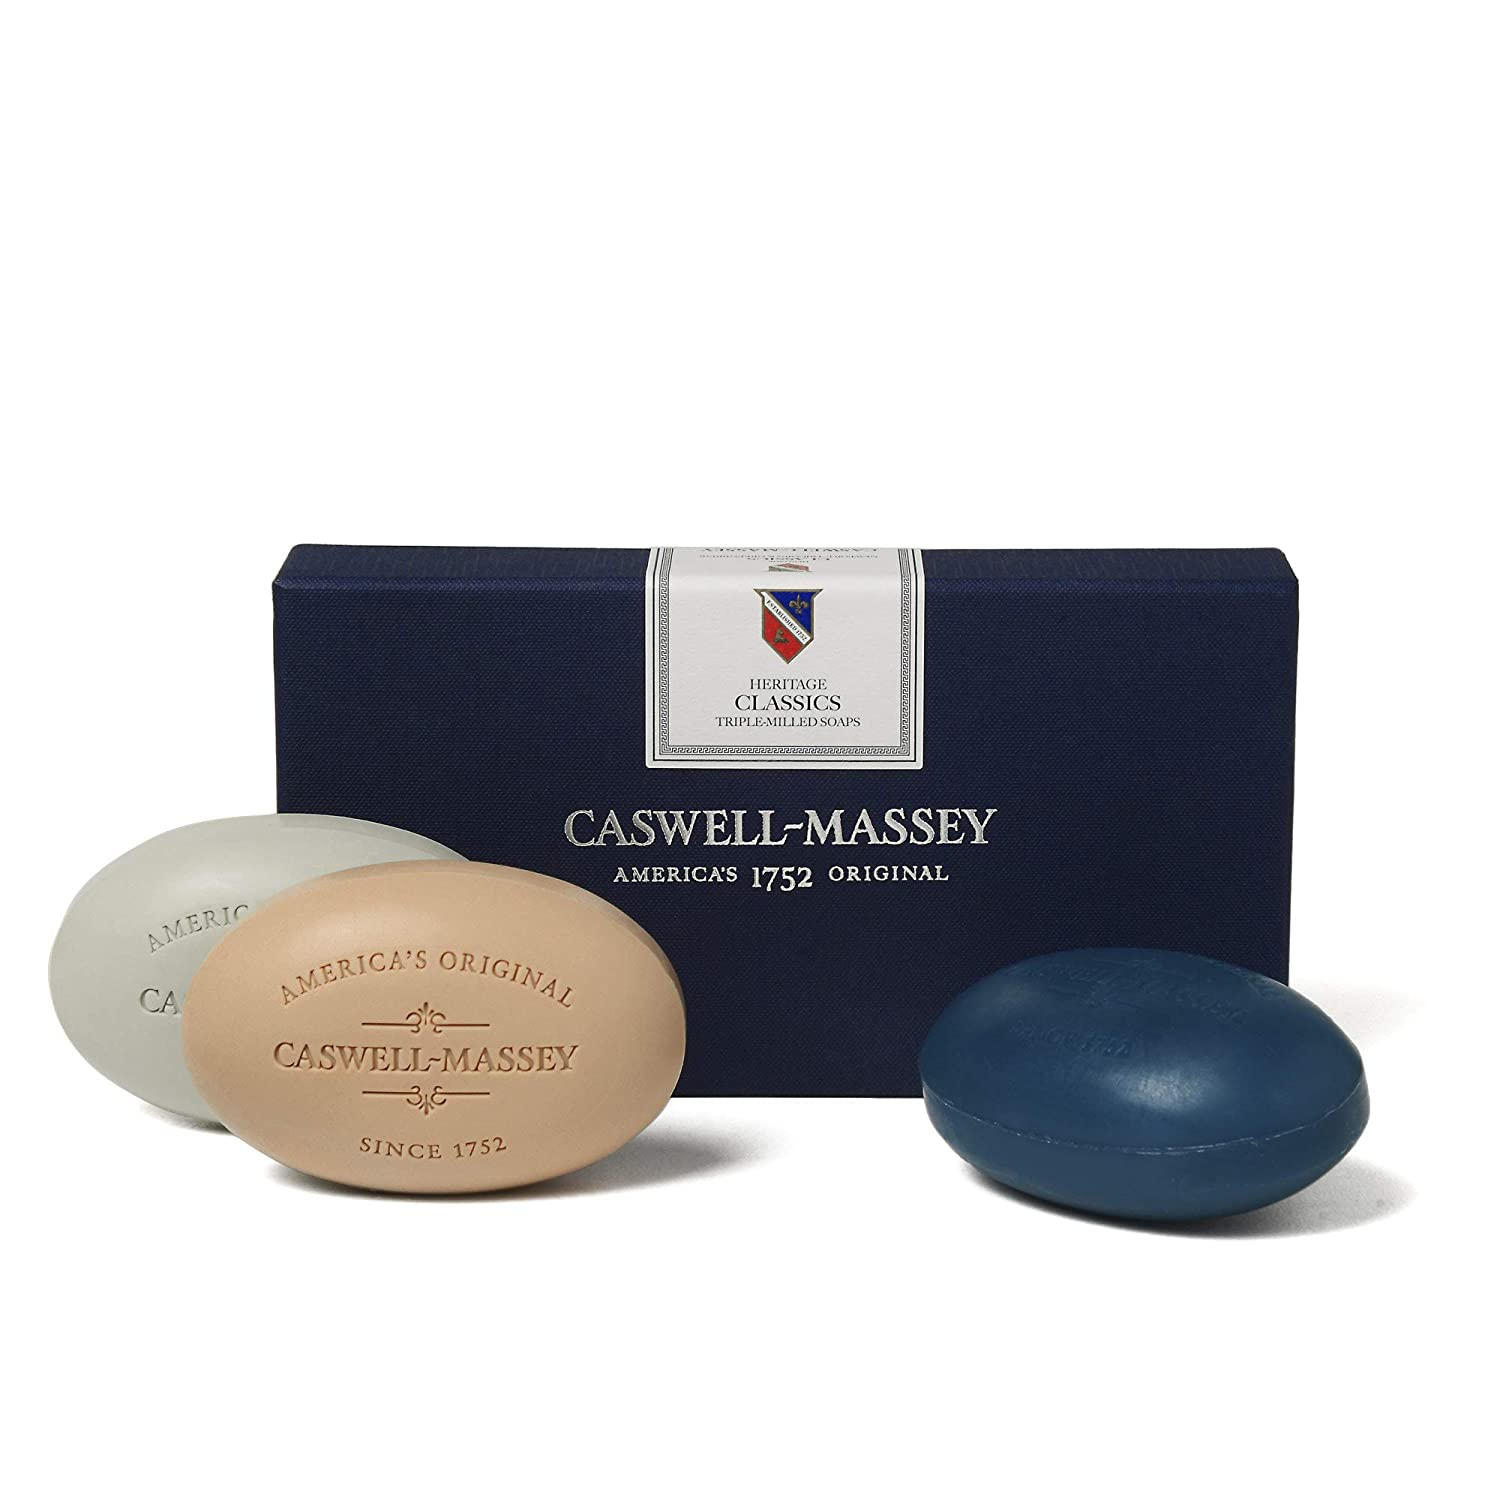 Caswell-Massey Heritage Collection Triple Milled Bath Soap (Classics, 5.8 Ounce (Pack of 3))